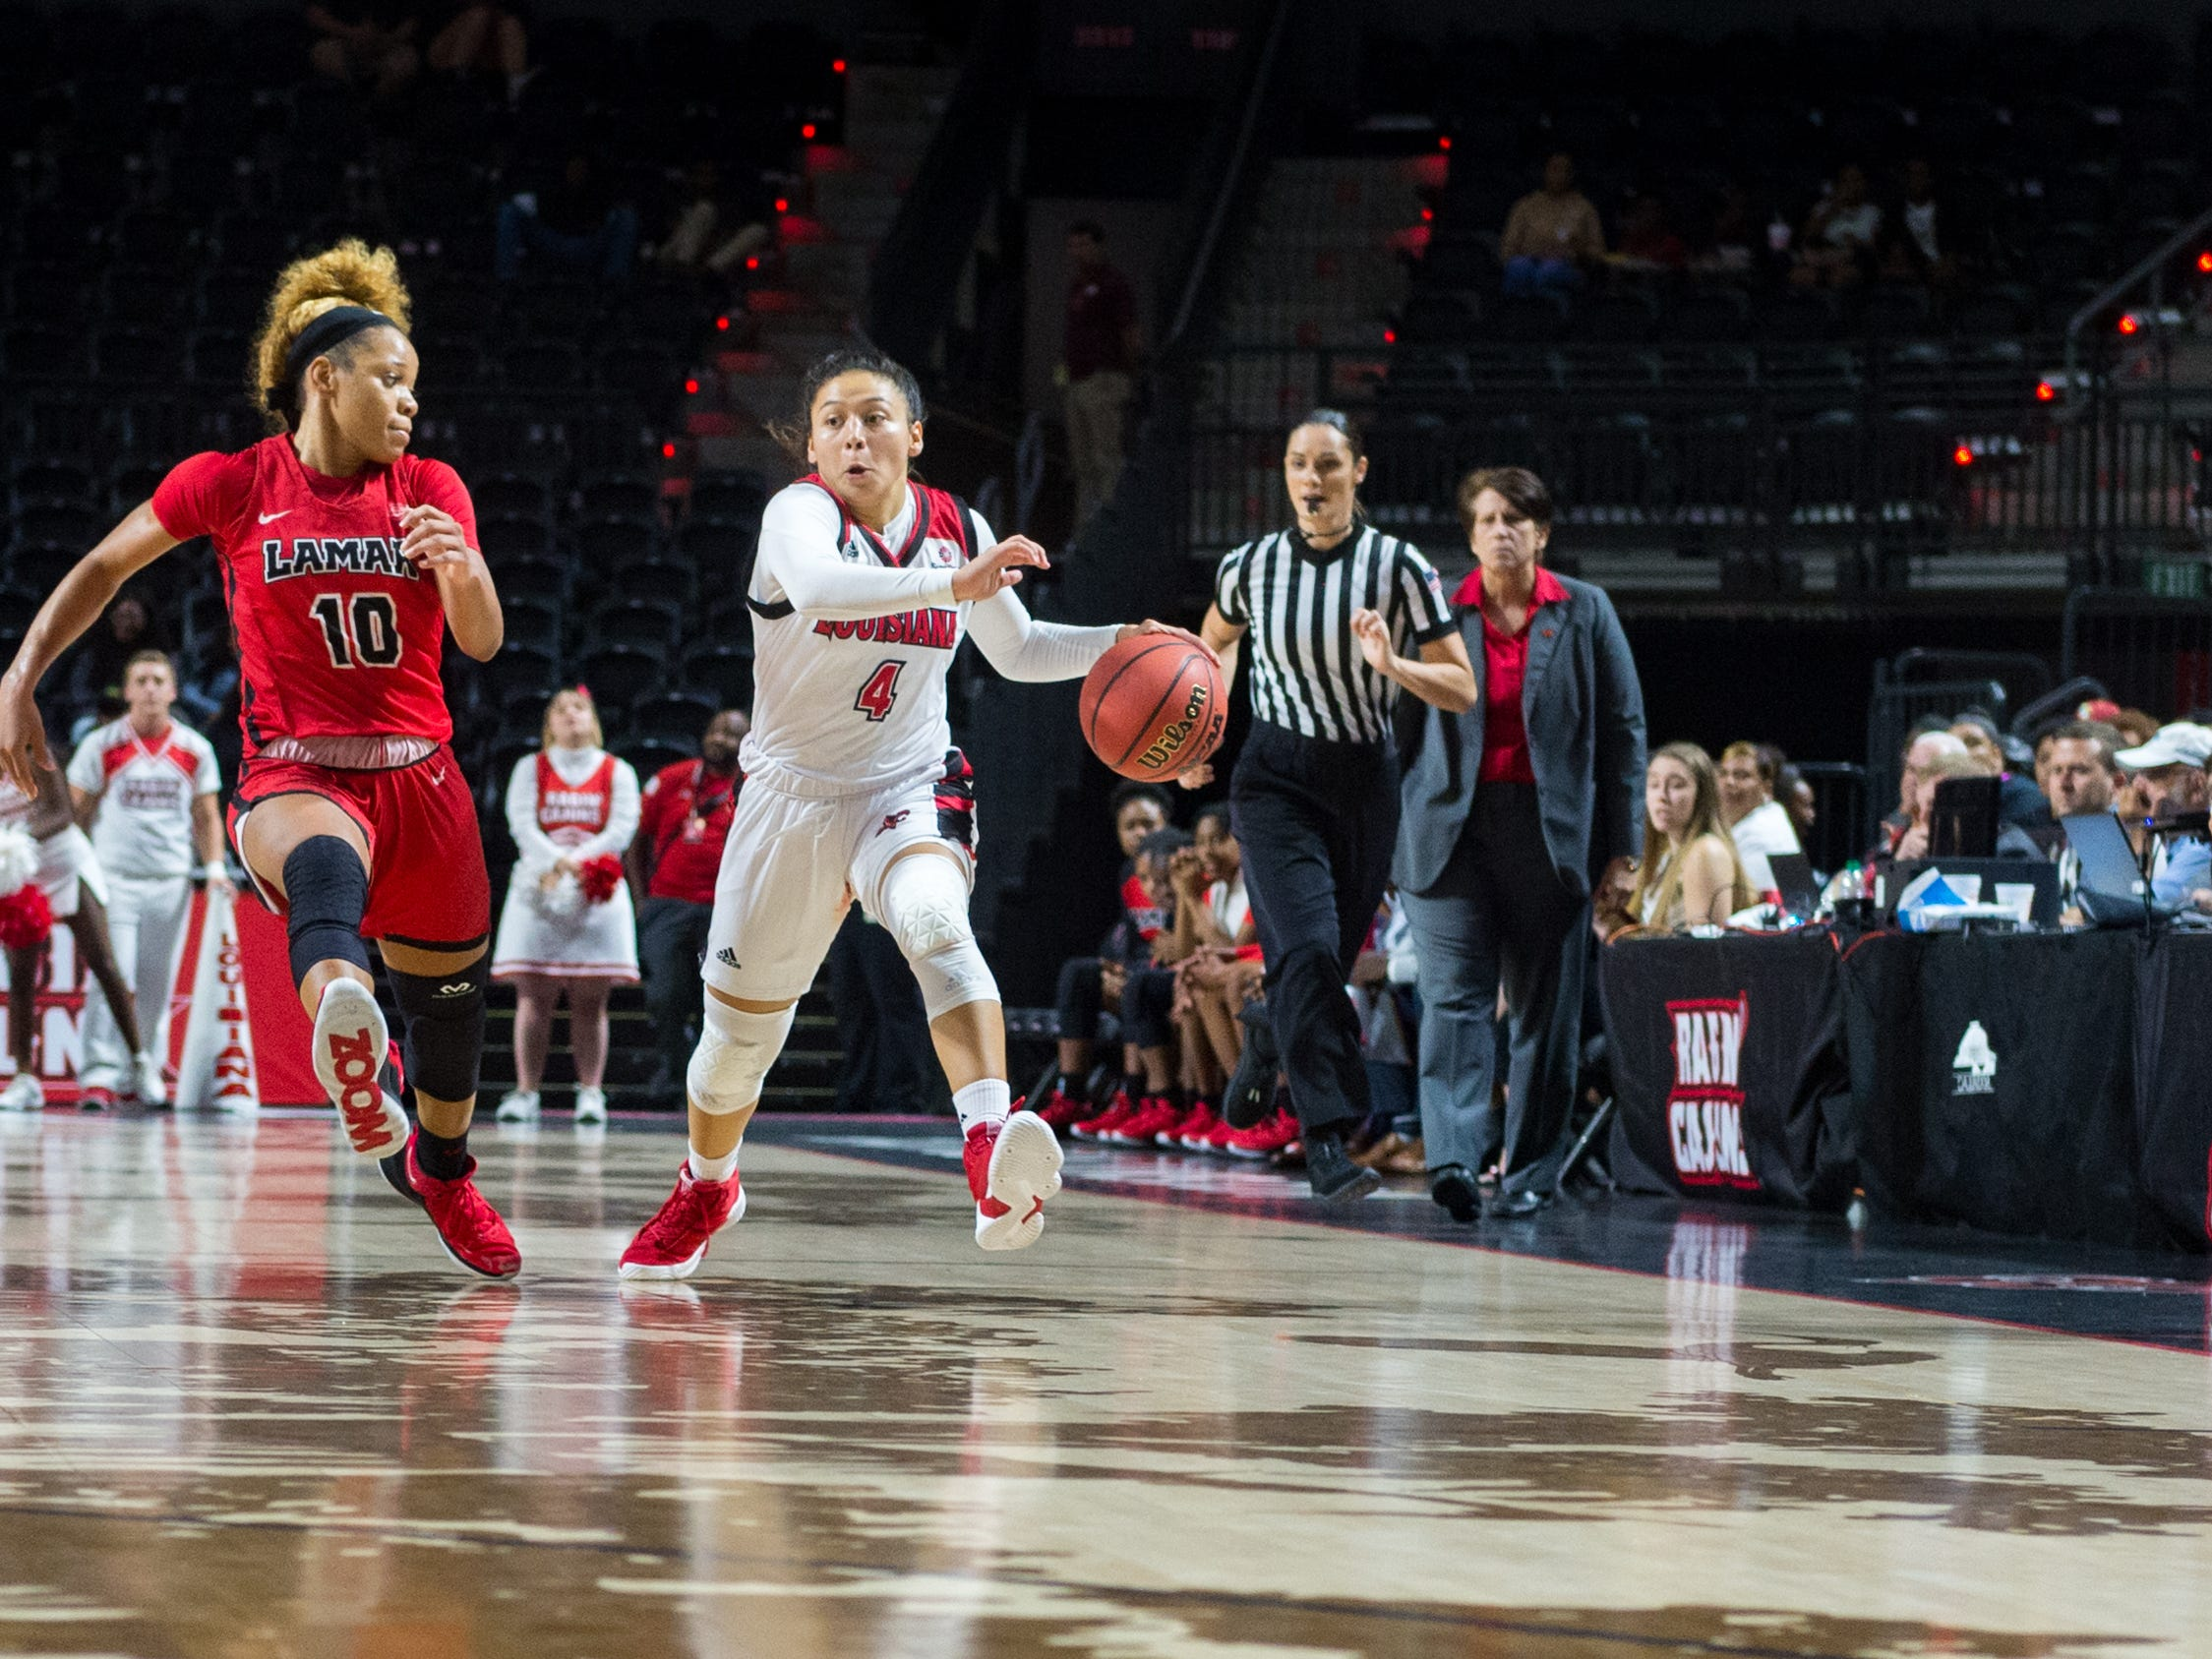 Caroline Rivera moves the ball as the Cajuns take on Lamar in Womens Basketball. Tuesday, Nov. 6, 2018.